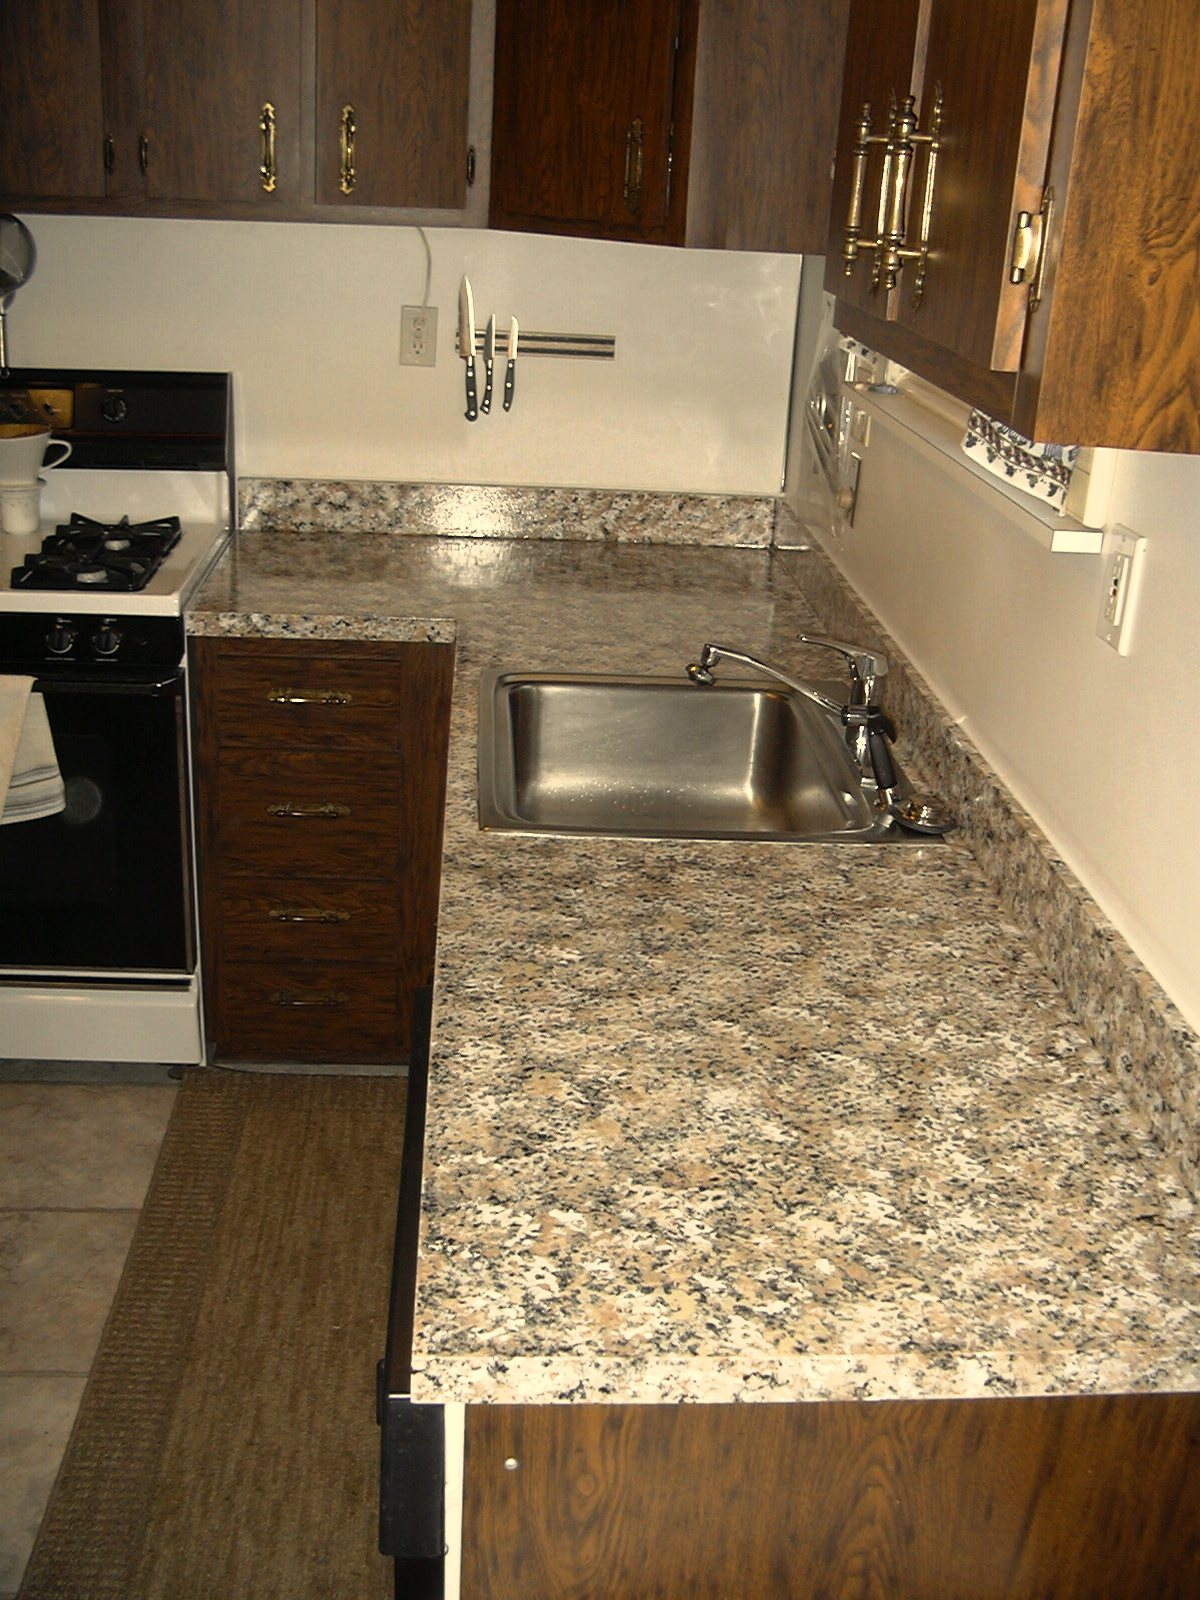 The Top Polyurethane Coats Gave The Countertop A Highly Glossy Finish.